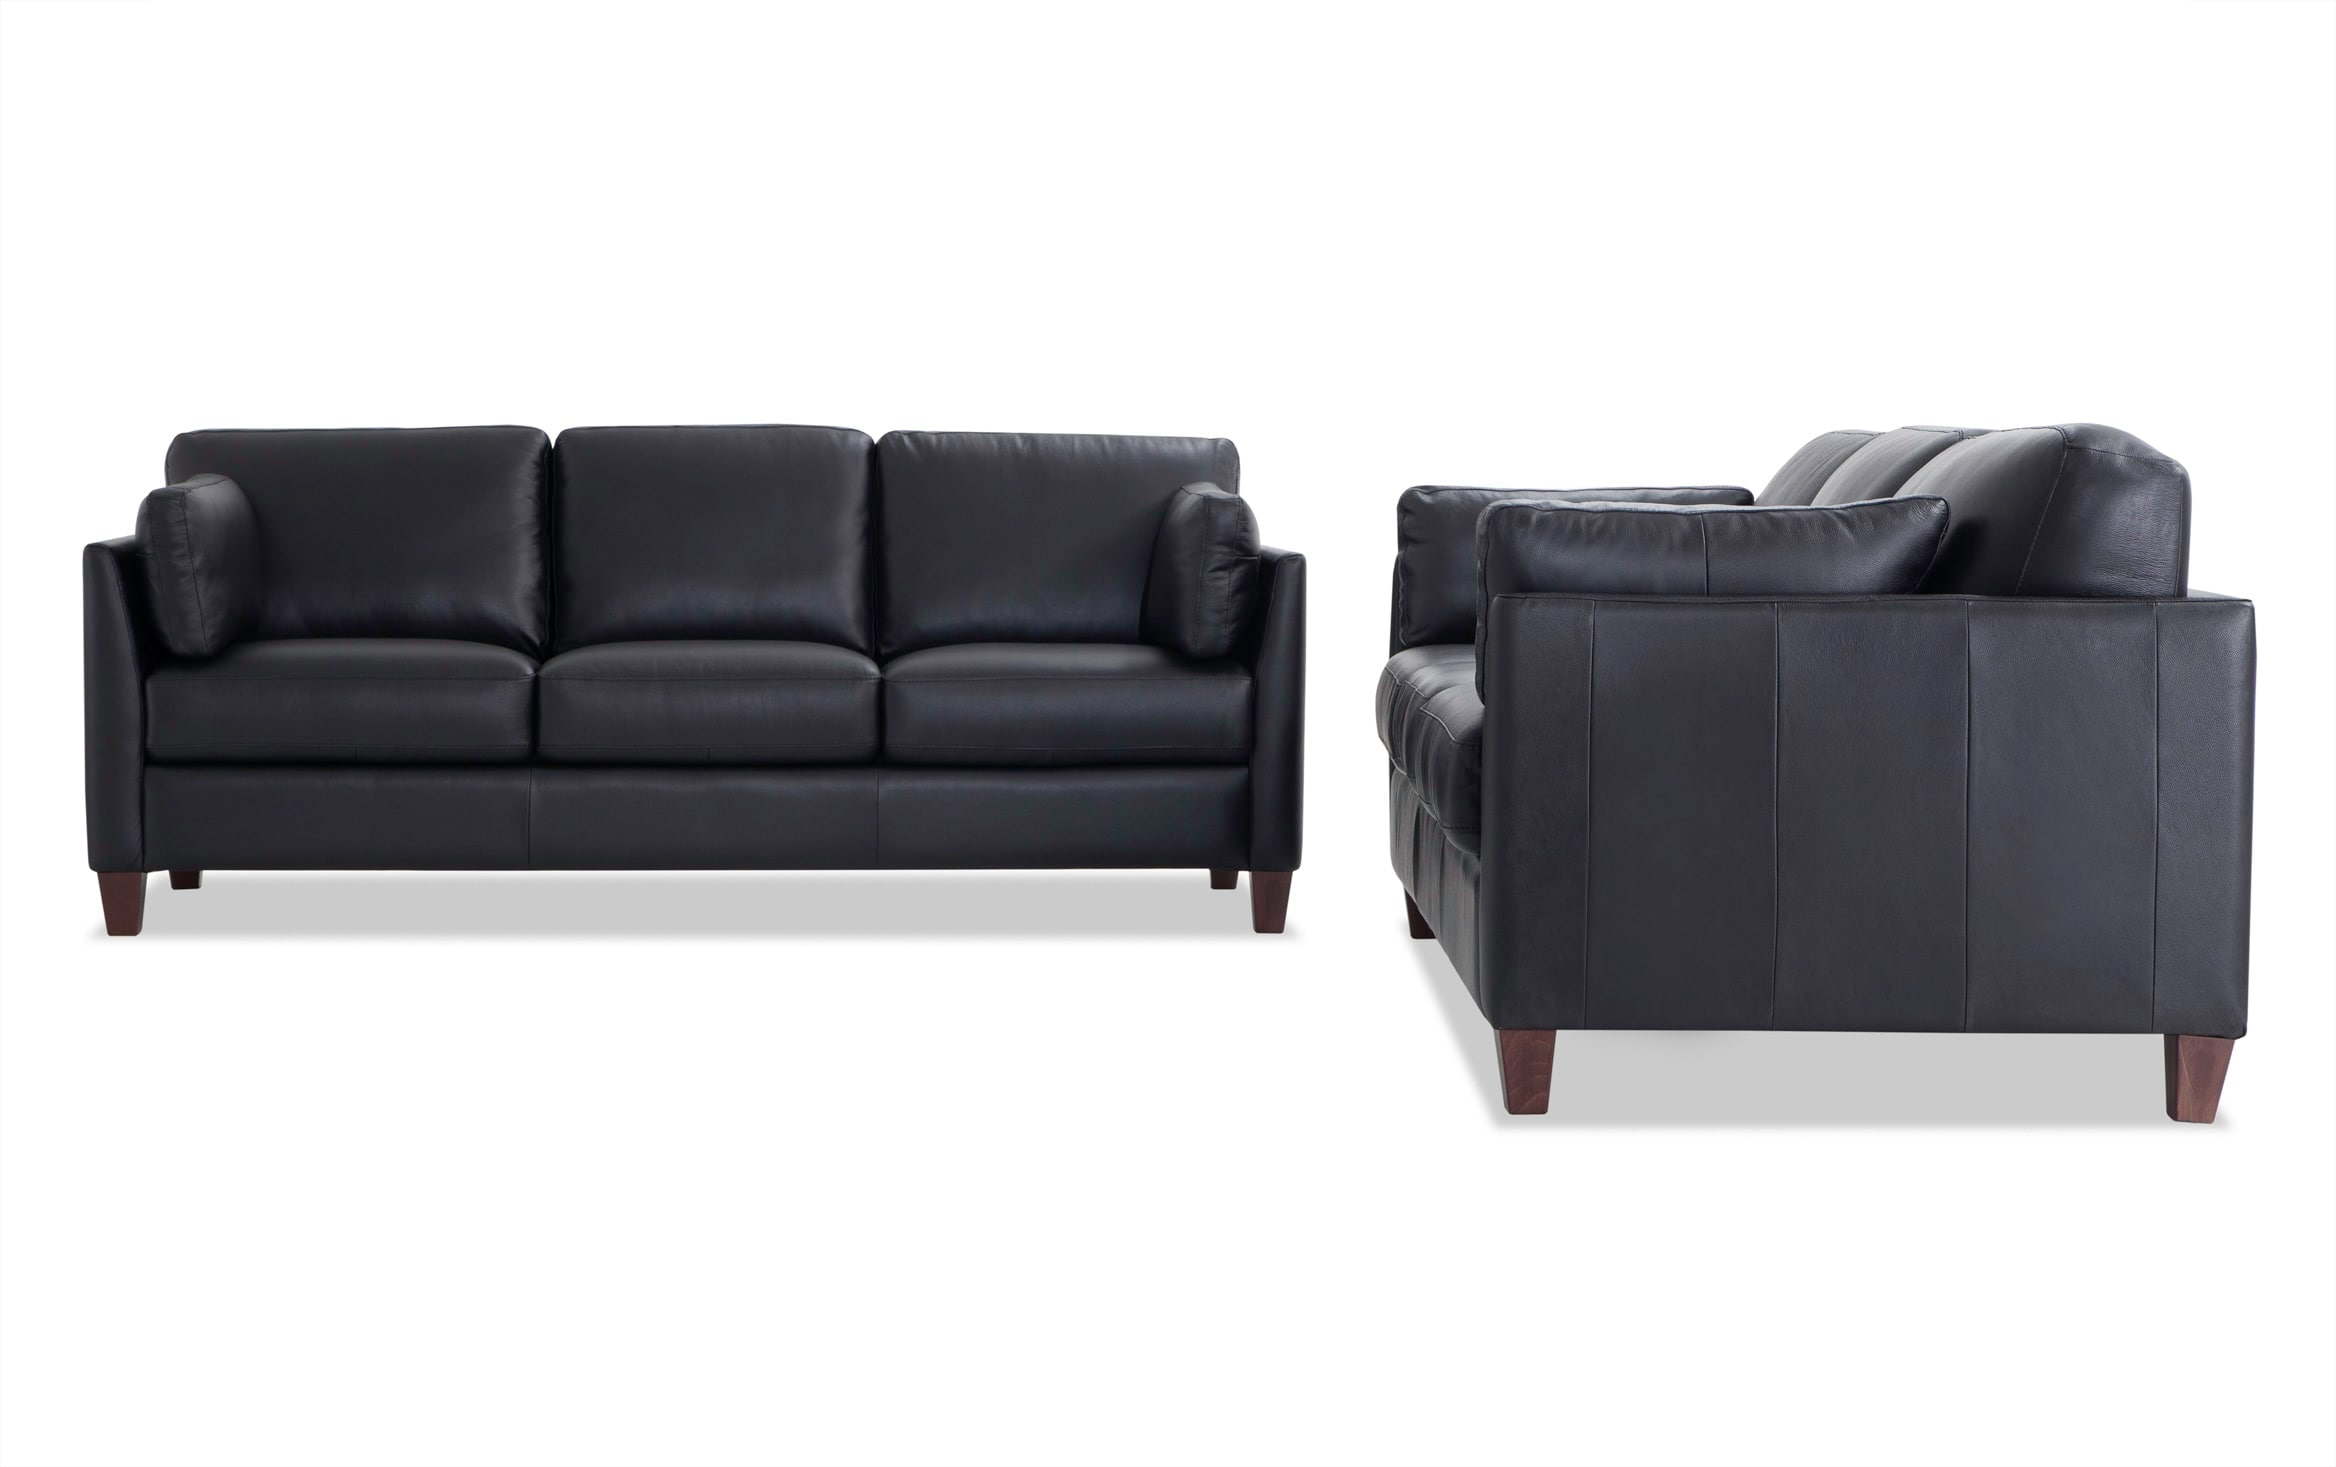 Antonio Black Leather Sofa Set Bobs